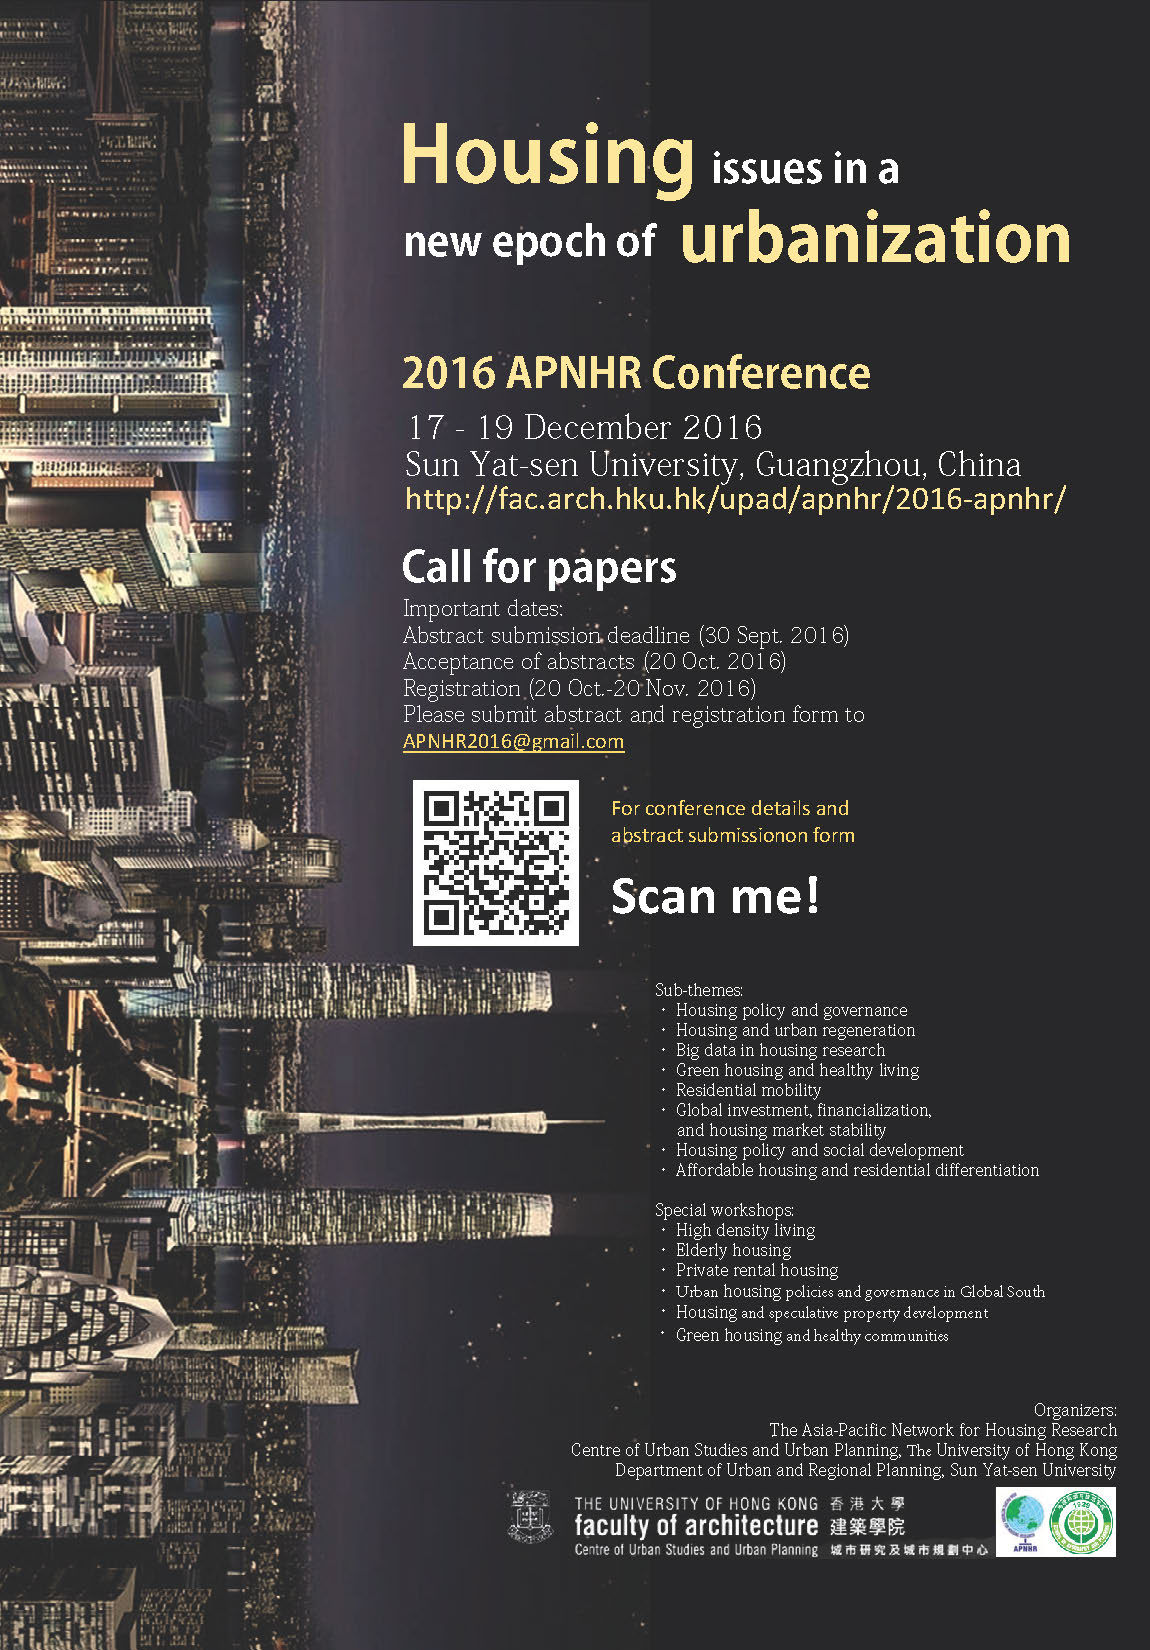 2016 APNHR Conference: Housing issues in a new epoch of